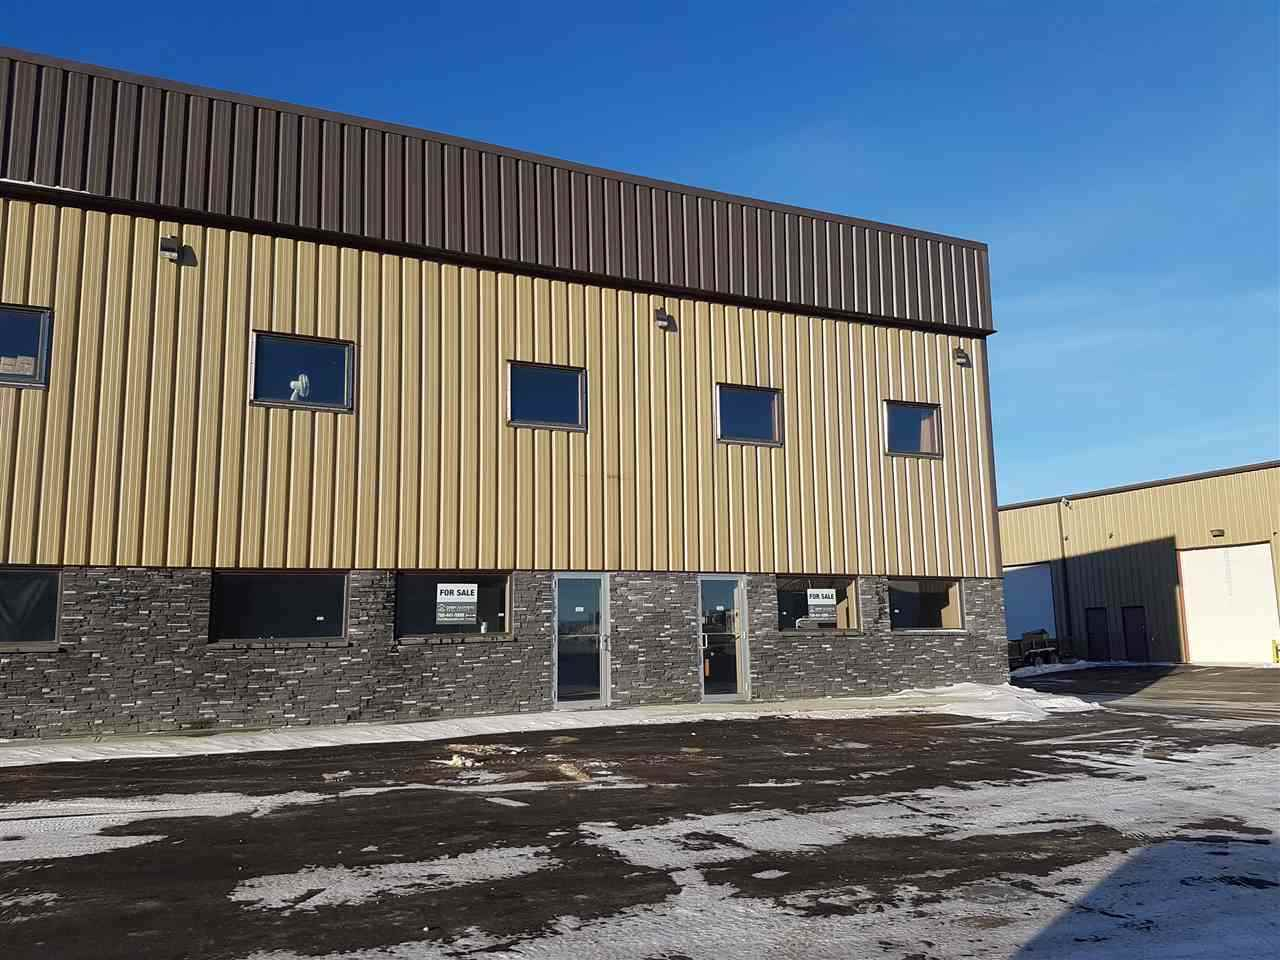 FOR SALE - FOR LEASE   Side by Side  Office/Warehouse bays with Mezzanine available immediately. Double wide open unit with unfinished Mezzanine in place .  Features 2 - 12' x 14' Doors, 2 Radiant Heaters, sump , 21' free clear ceilings, 2- 225 amp 3 phase power .  Great street view, lots of parking  and endless opportunities